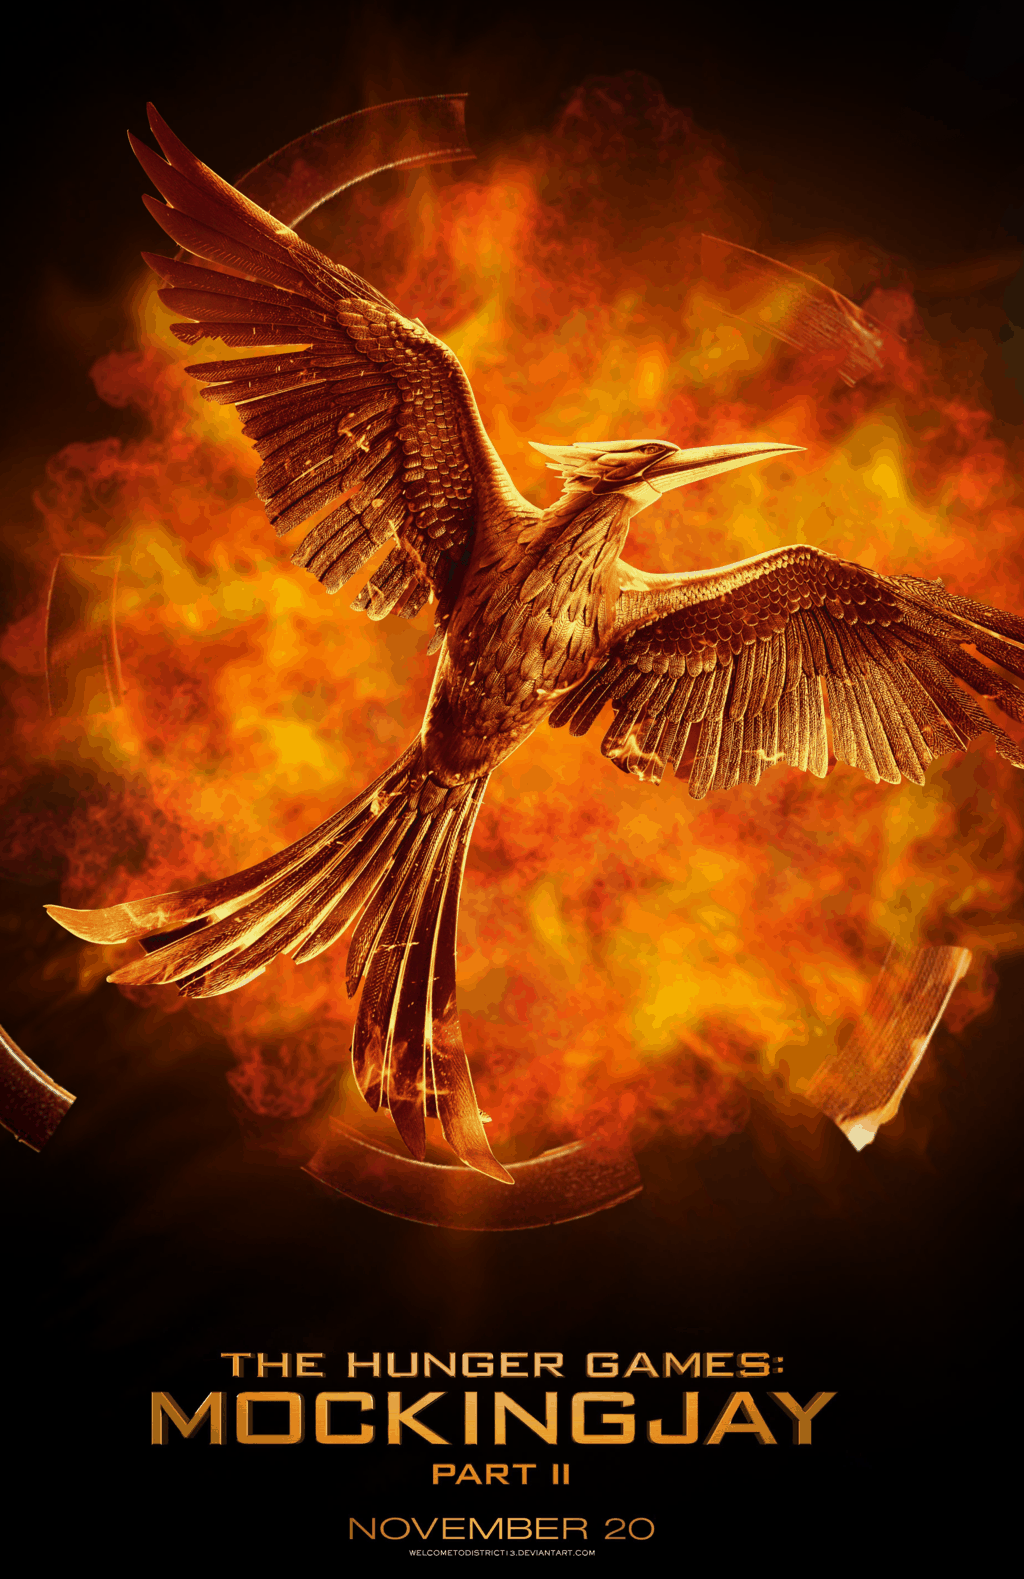 The_Hunger_Games_Mockingjay_Part_2